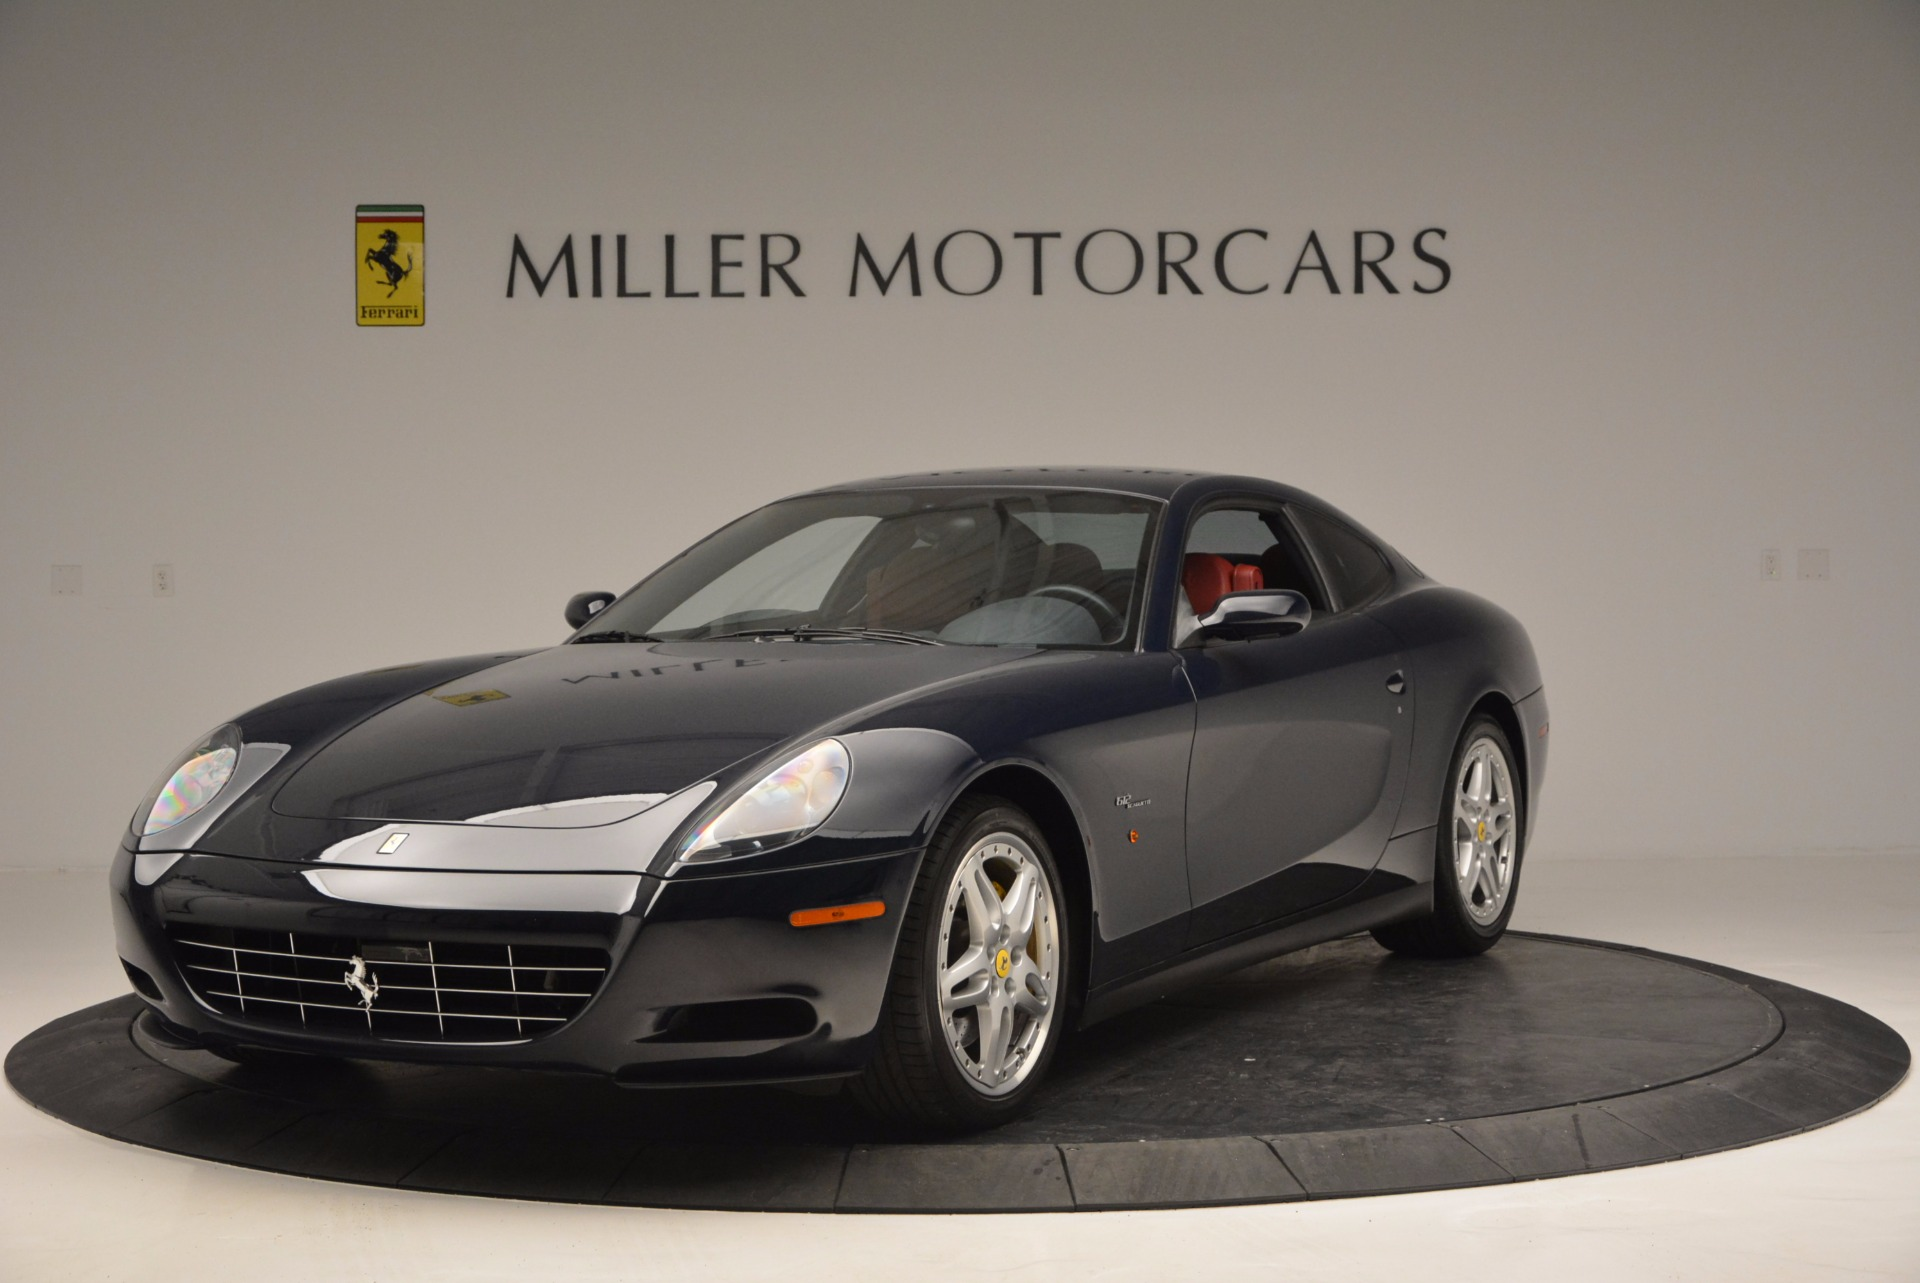 Used 2005 Ferrari 612 Scaglietti 6-Speed Manual for sale Sold at Alfa Romeo of Greenwich in Greenwich CT 06830 1